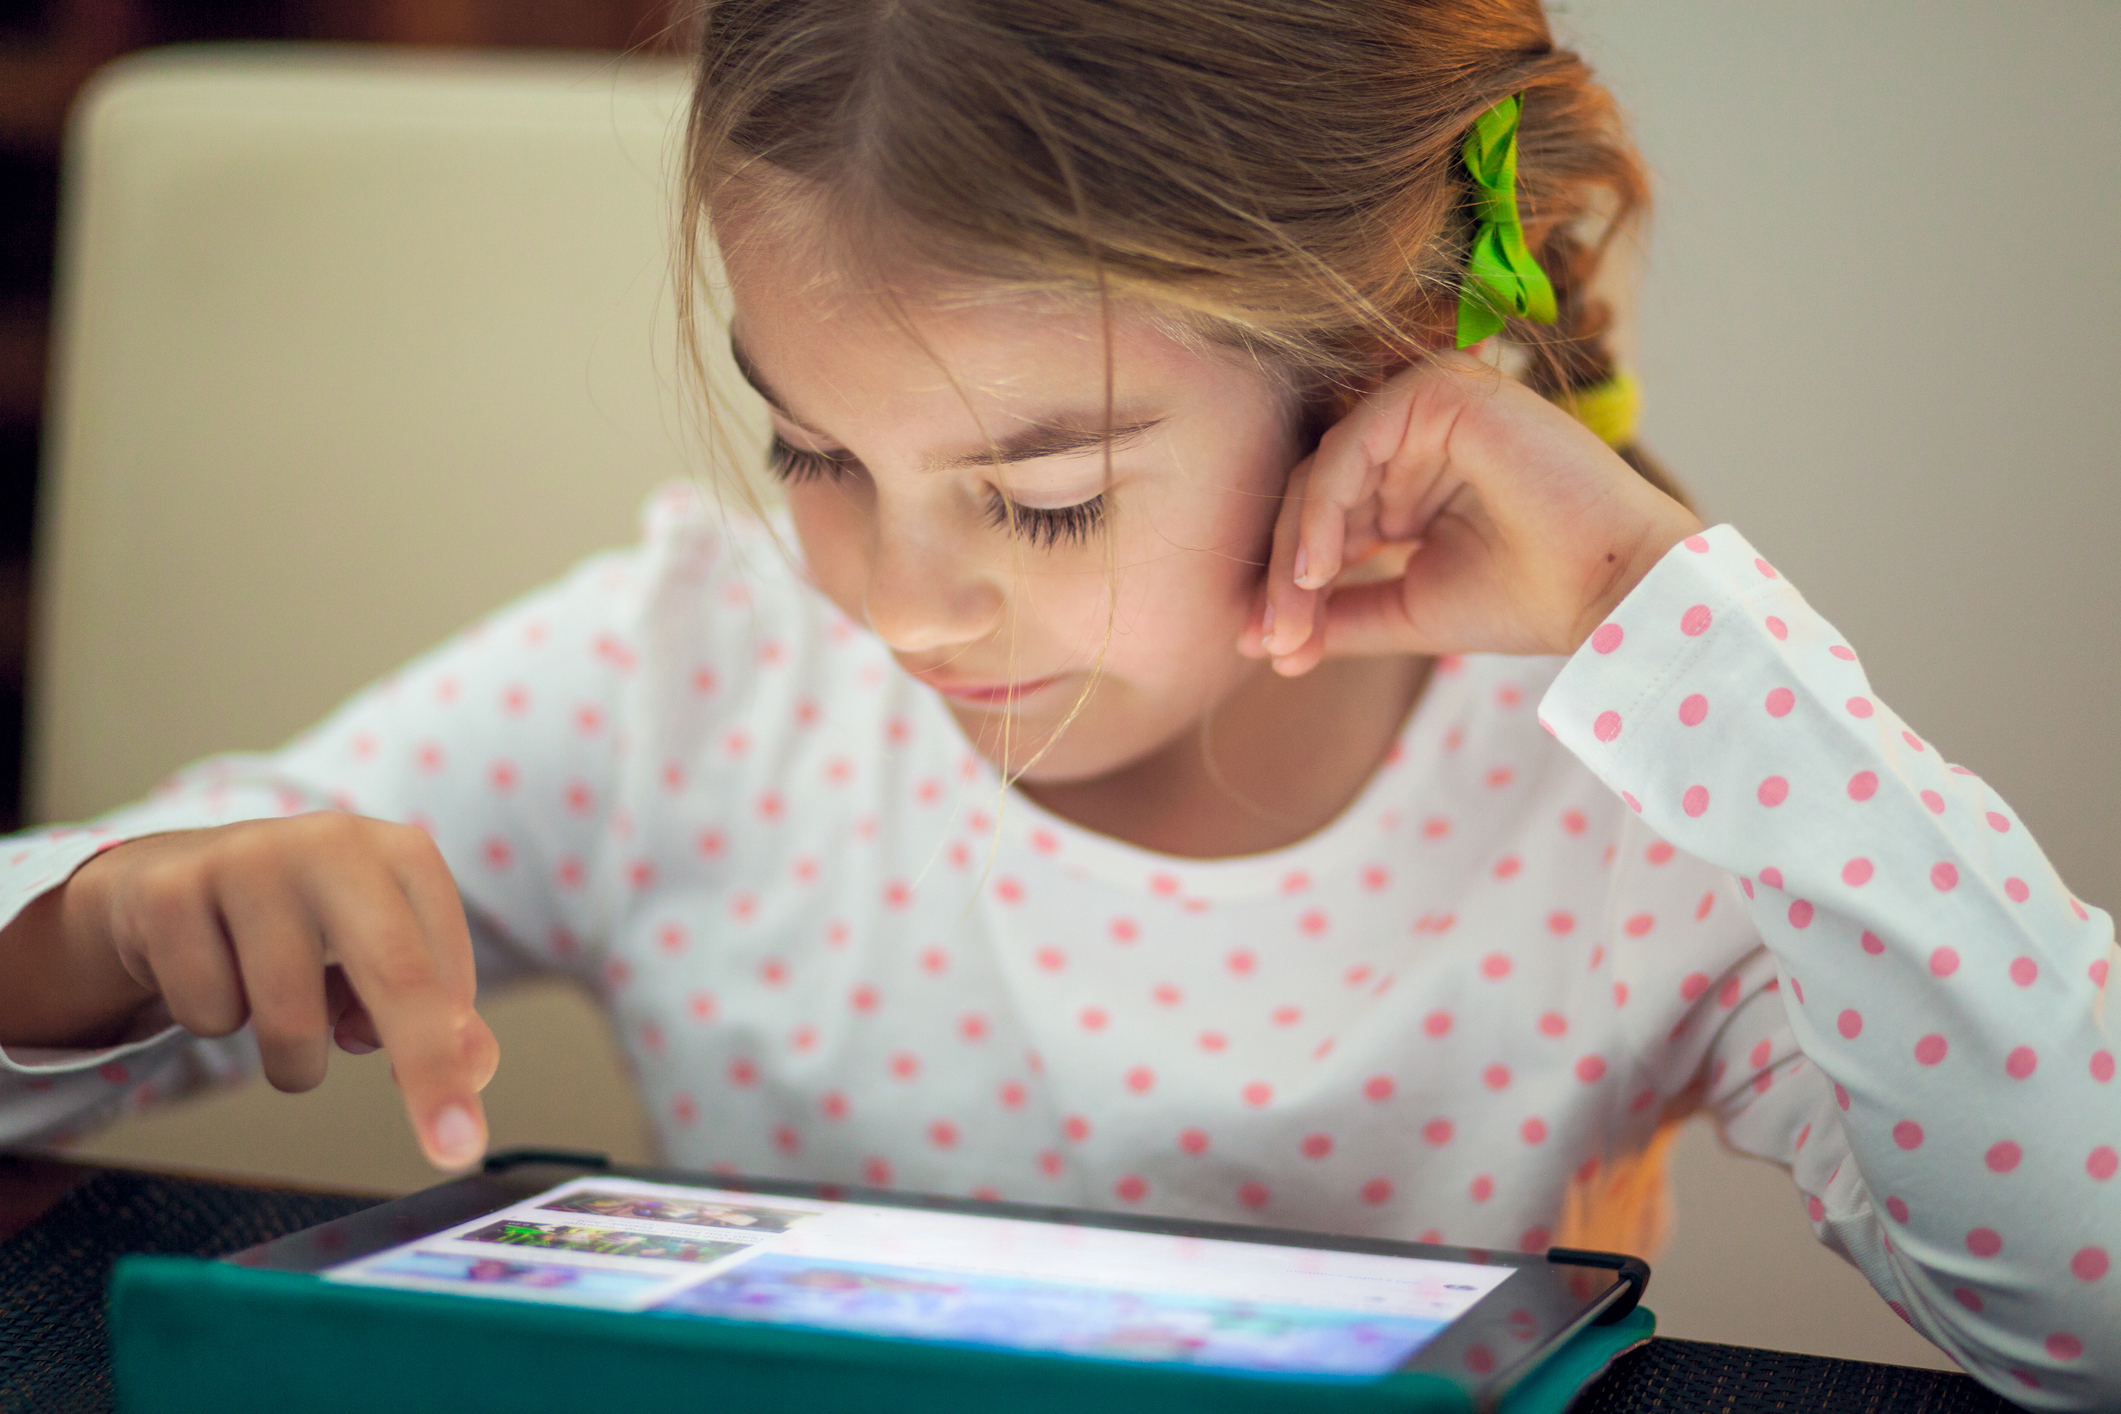 Little girl playing on her tablet at home (Thinkstock/PA)